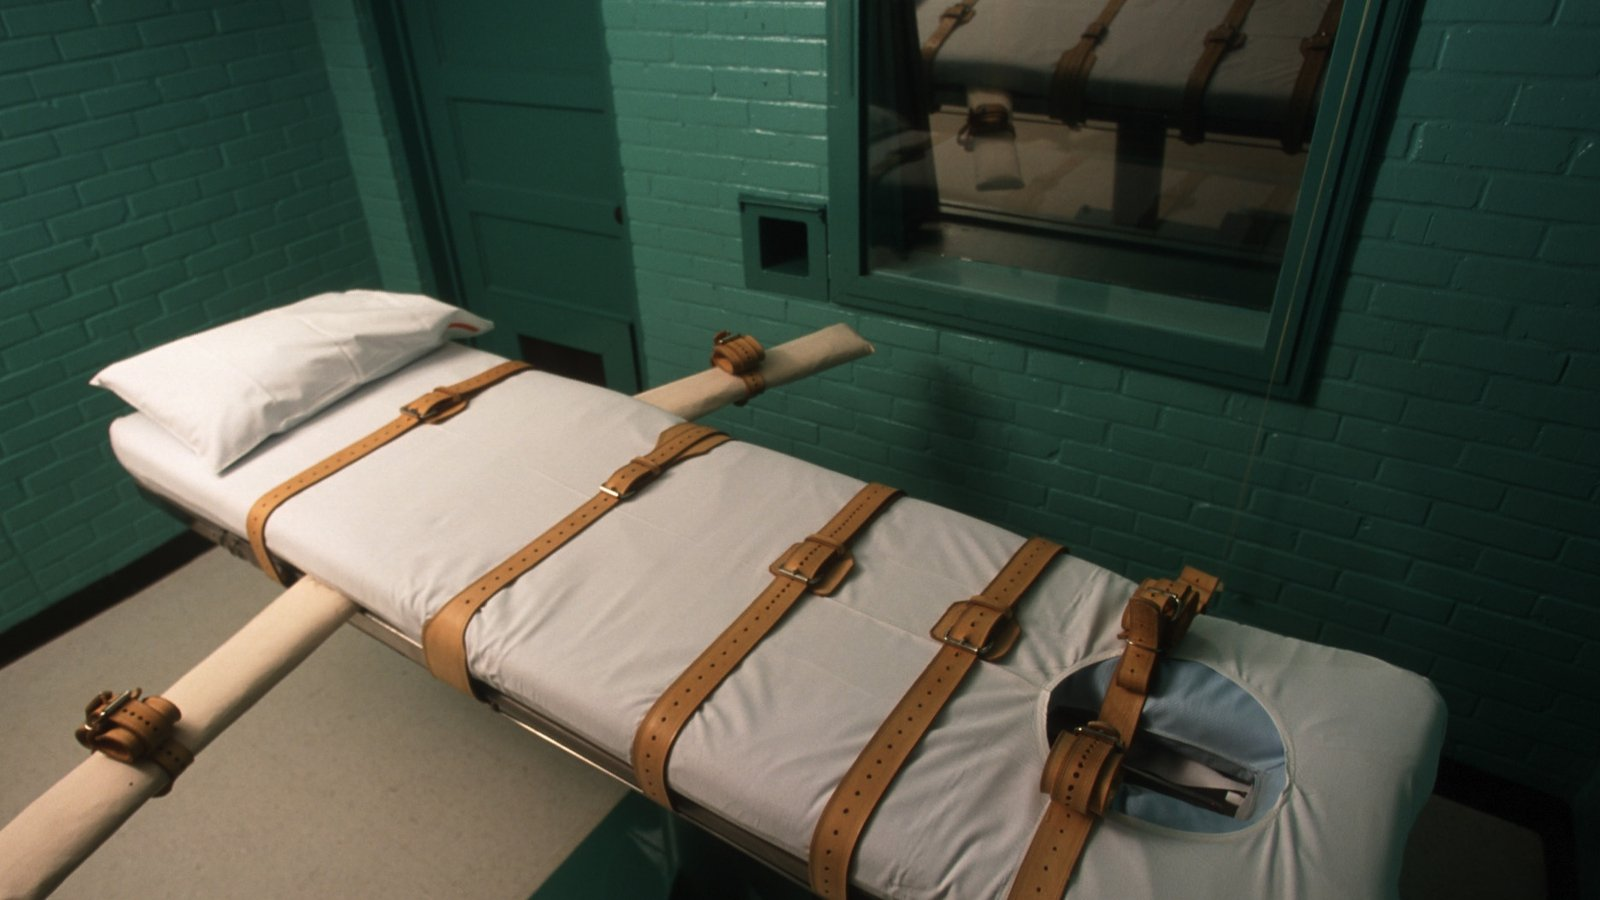 Aborted execution in Alabama was bloody - lawyer